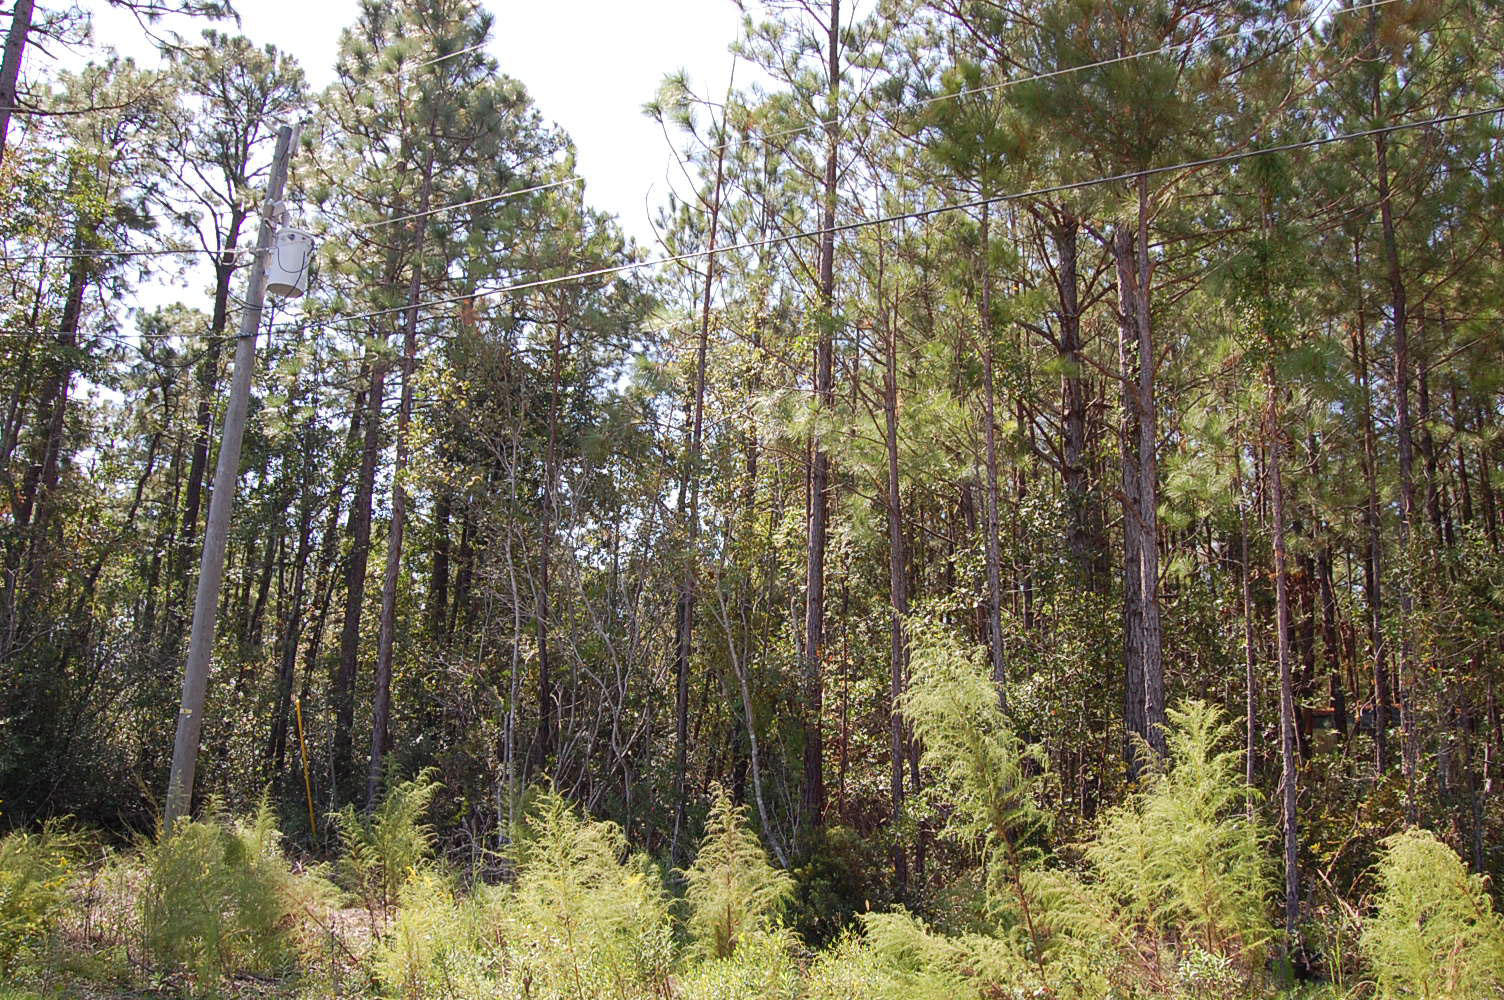 One Acre Property Minutes from the Topsail Beach - Image 4